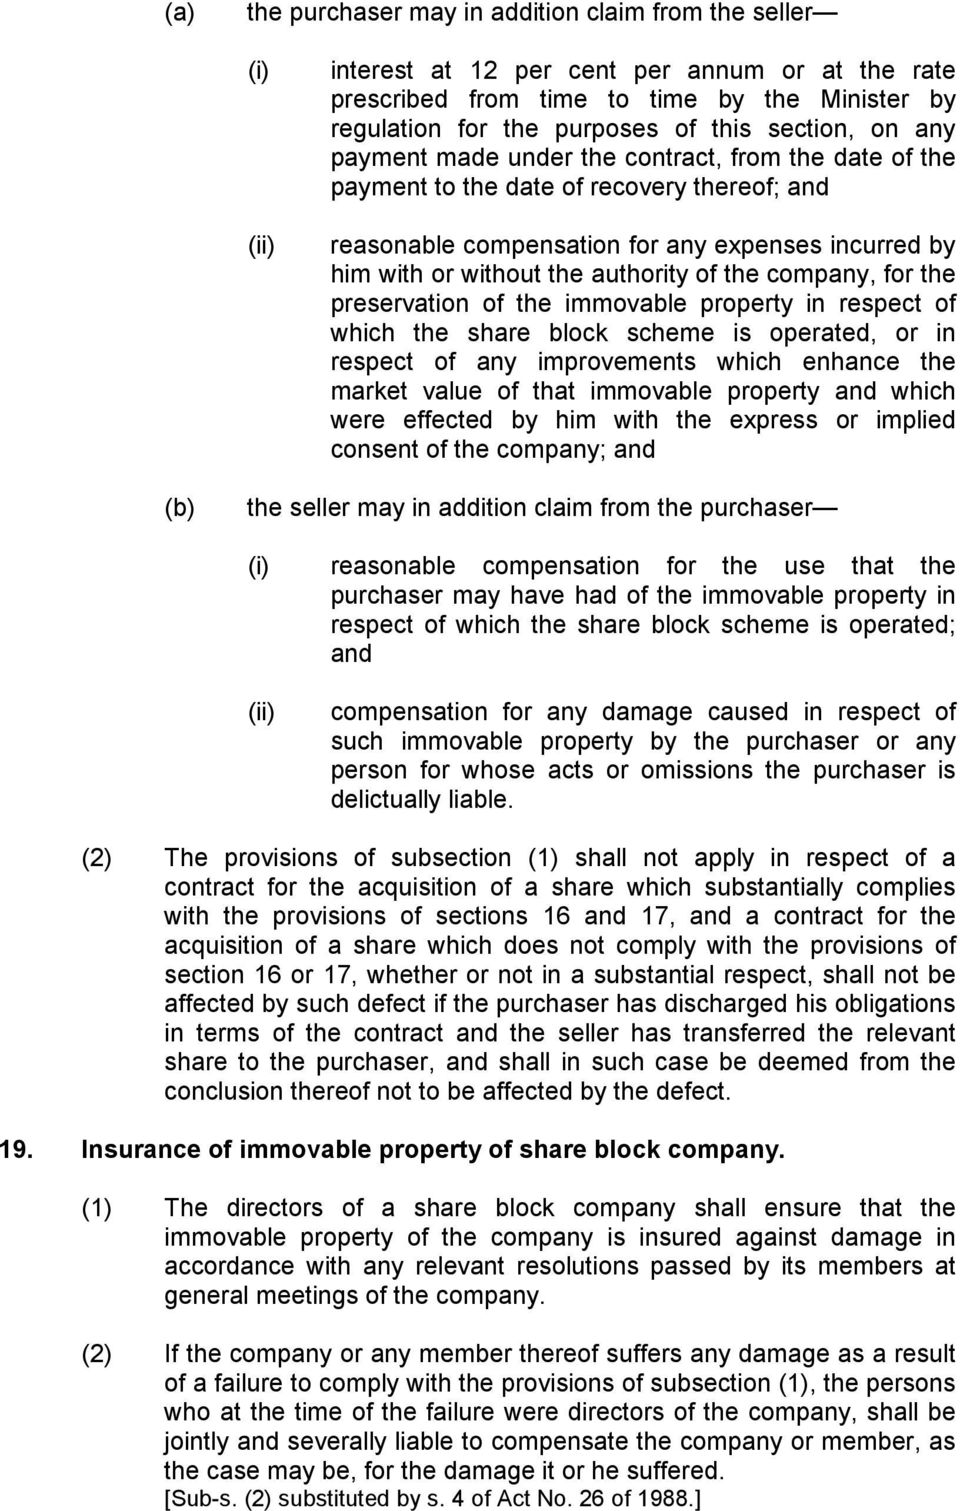 authority of the company, for the preservation of the immovable property in respect of which the share block scheme is operated, or in respect of any improvements which enhance the market value of